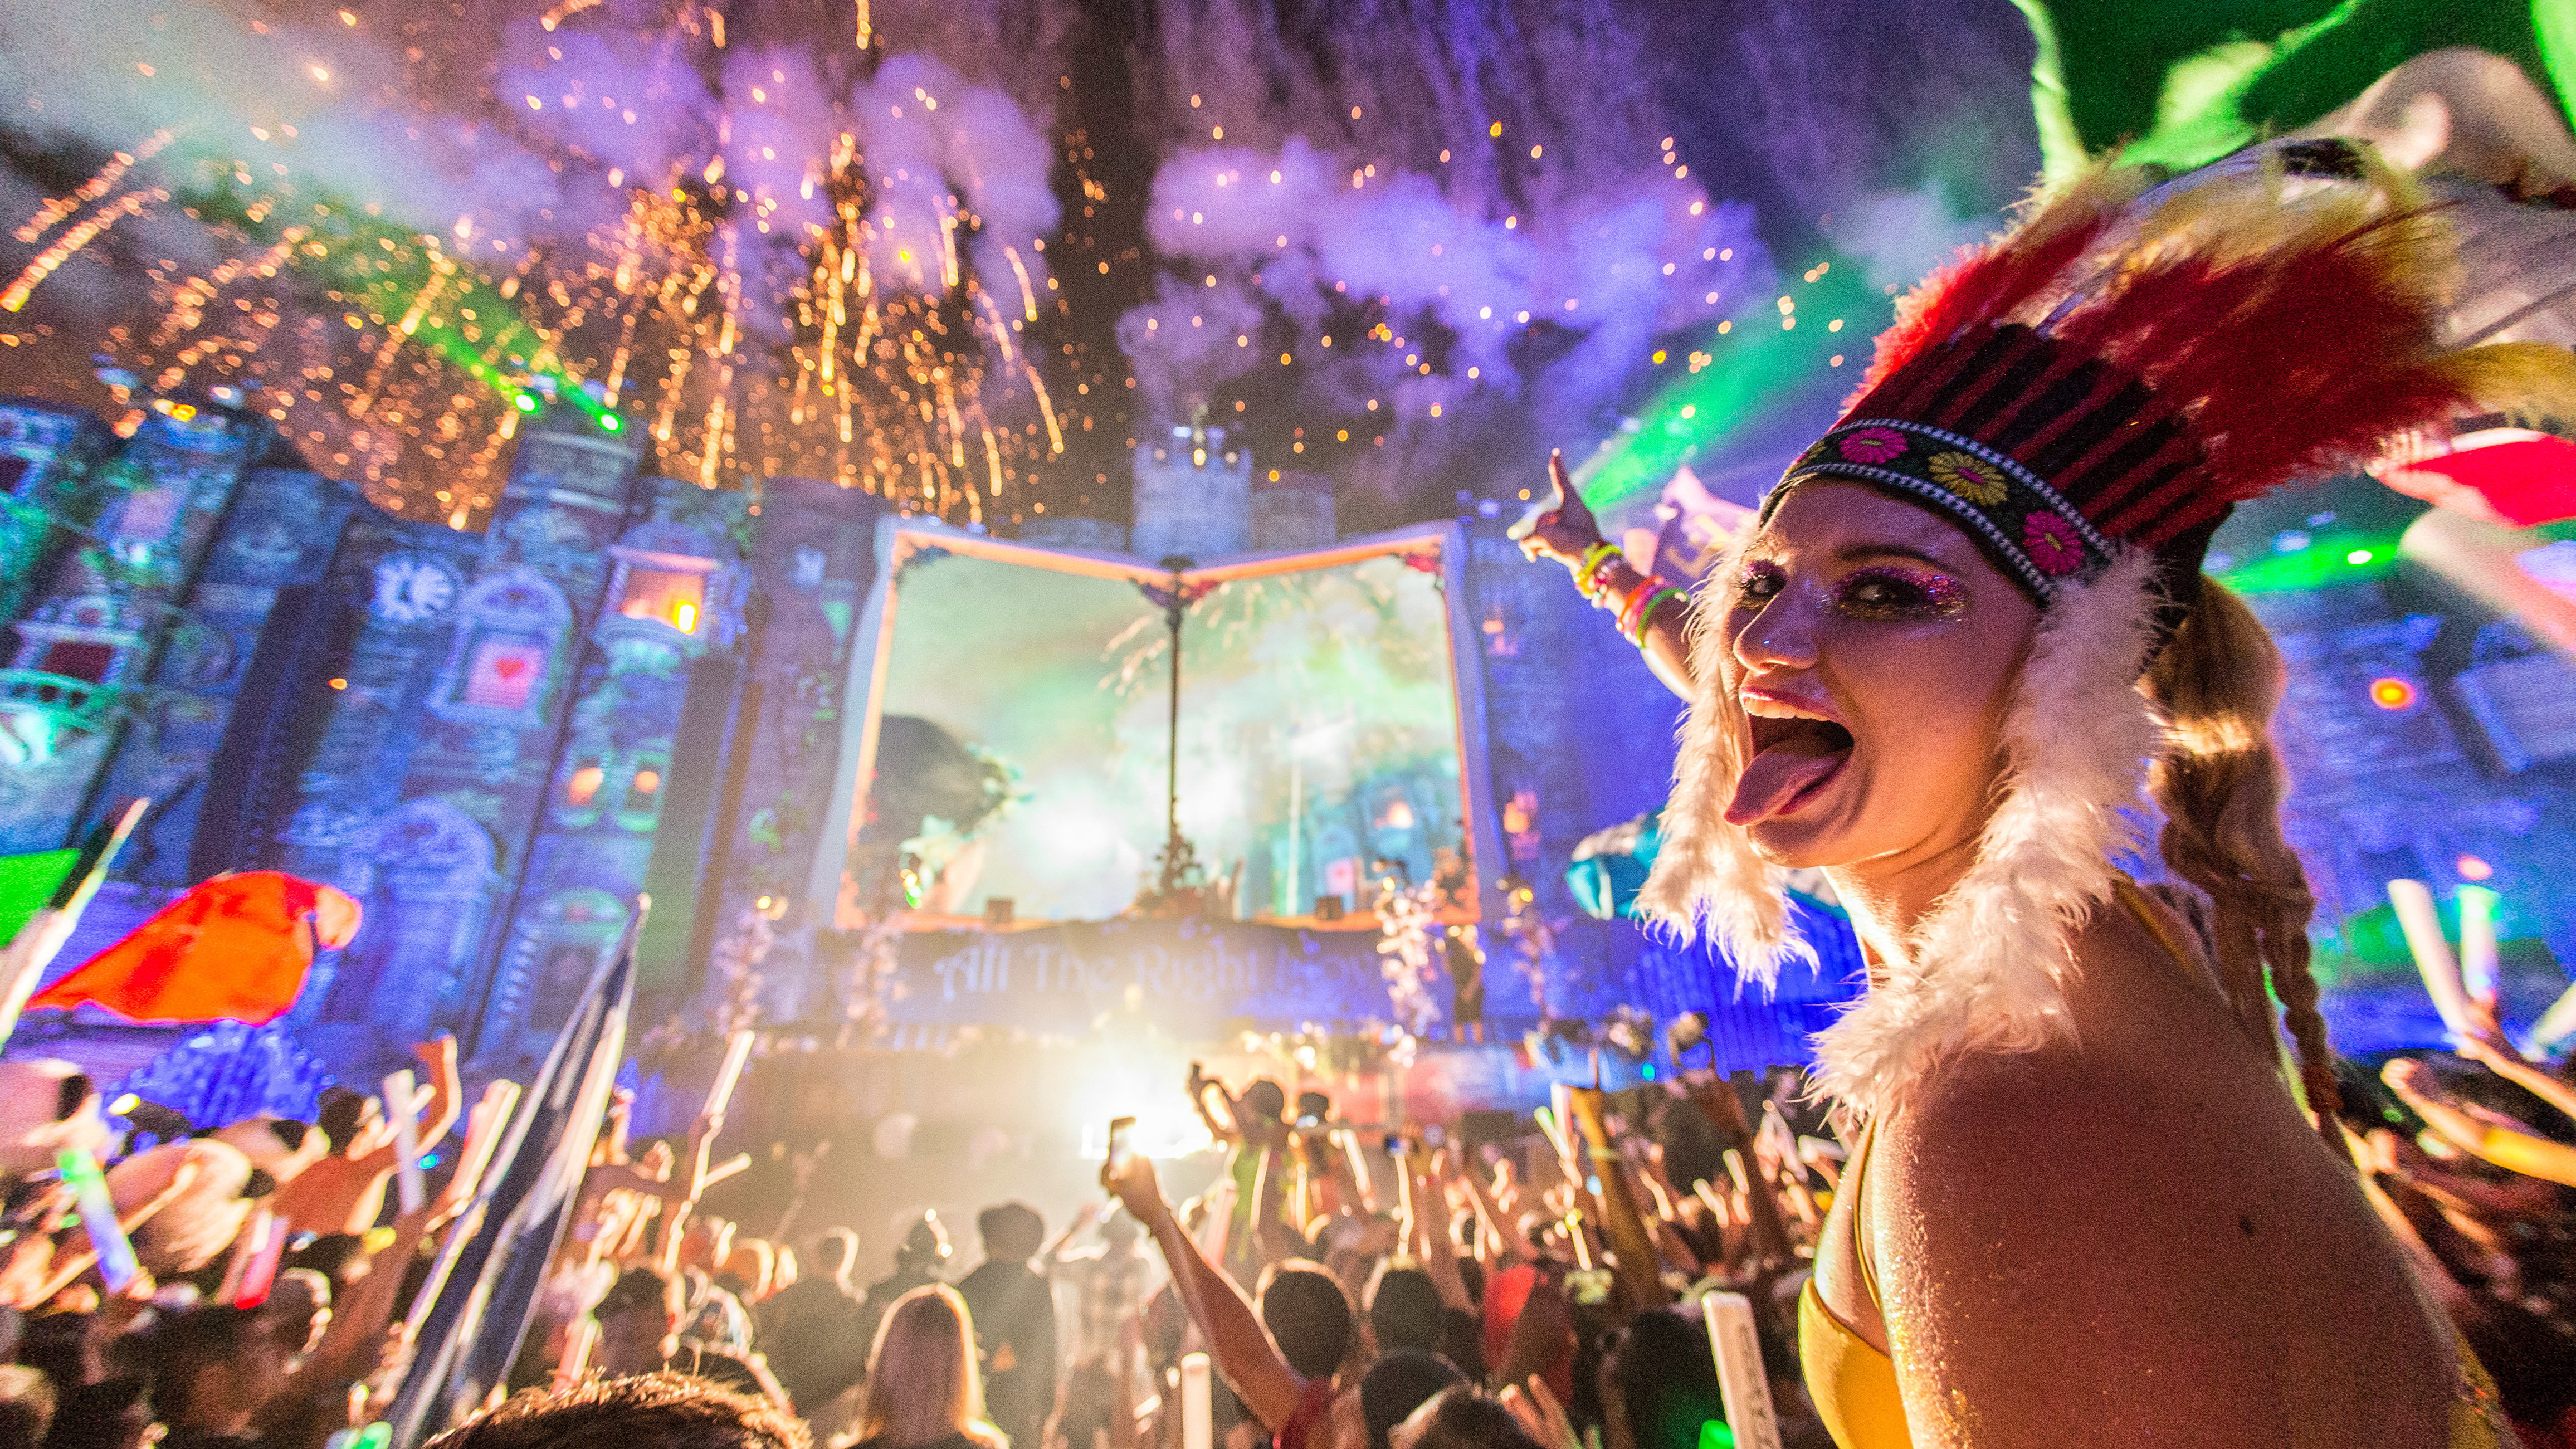 The Mainstreaming Of EDM And The Precipitous Drop That Followed